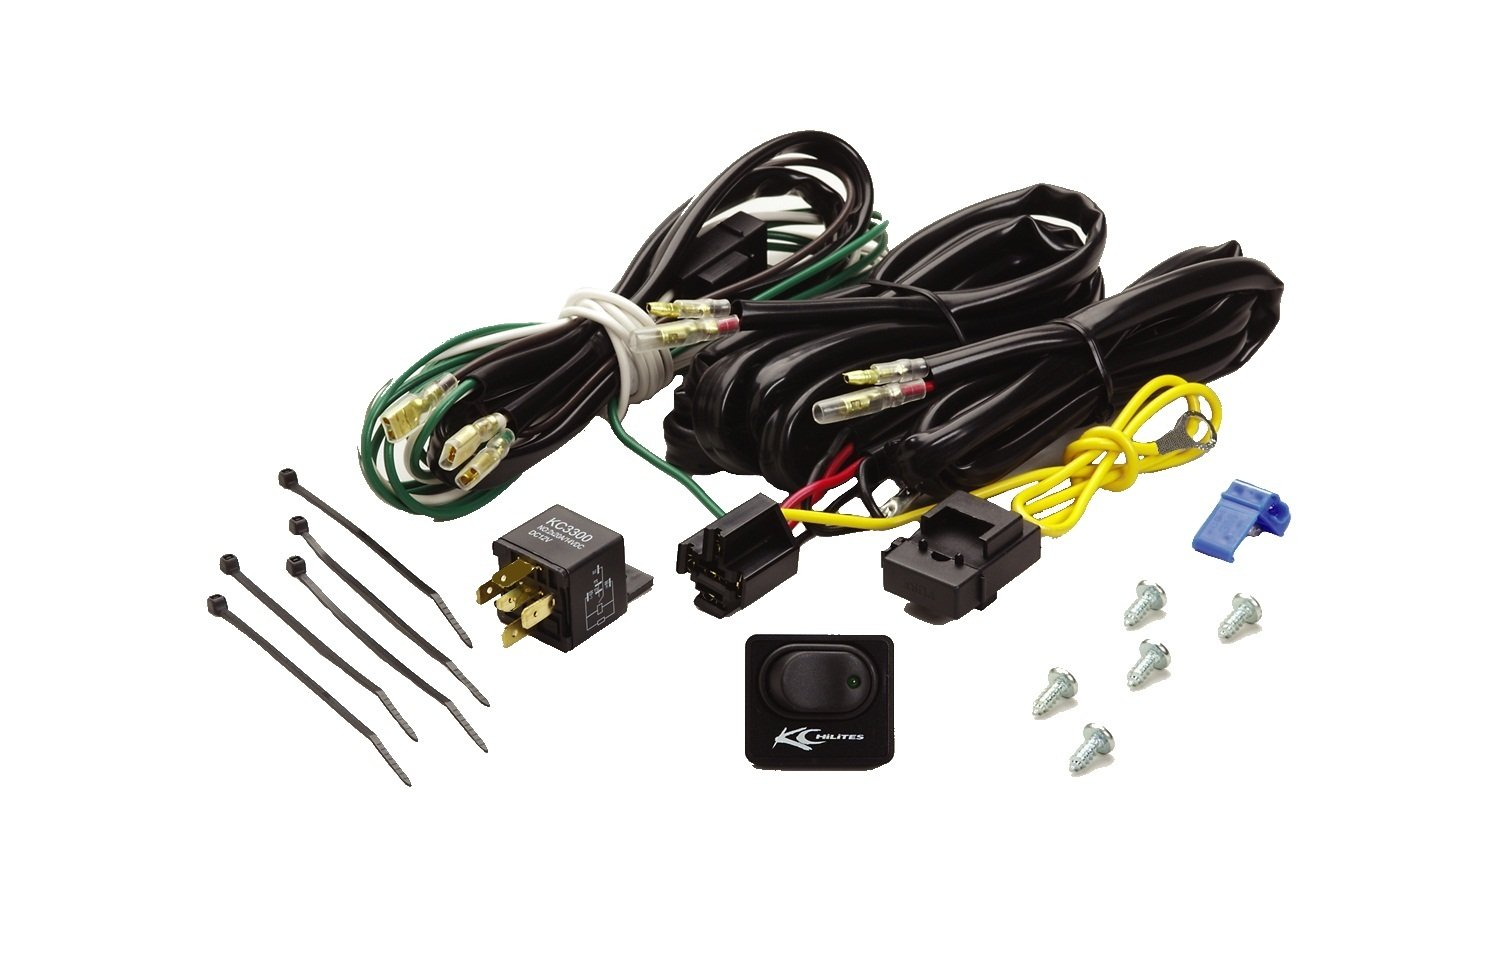 amazon com: kc hilites 6315 wiring harness with 40 amp relay and led rocker  switch: automotive